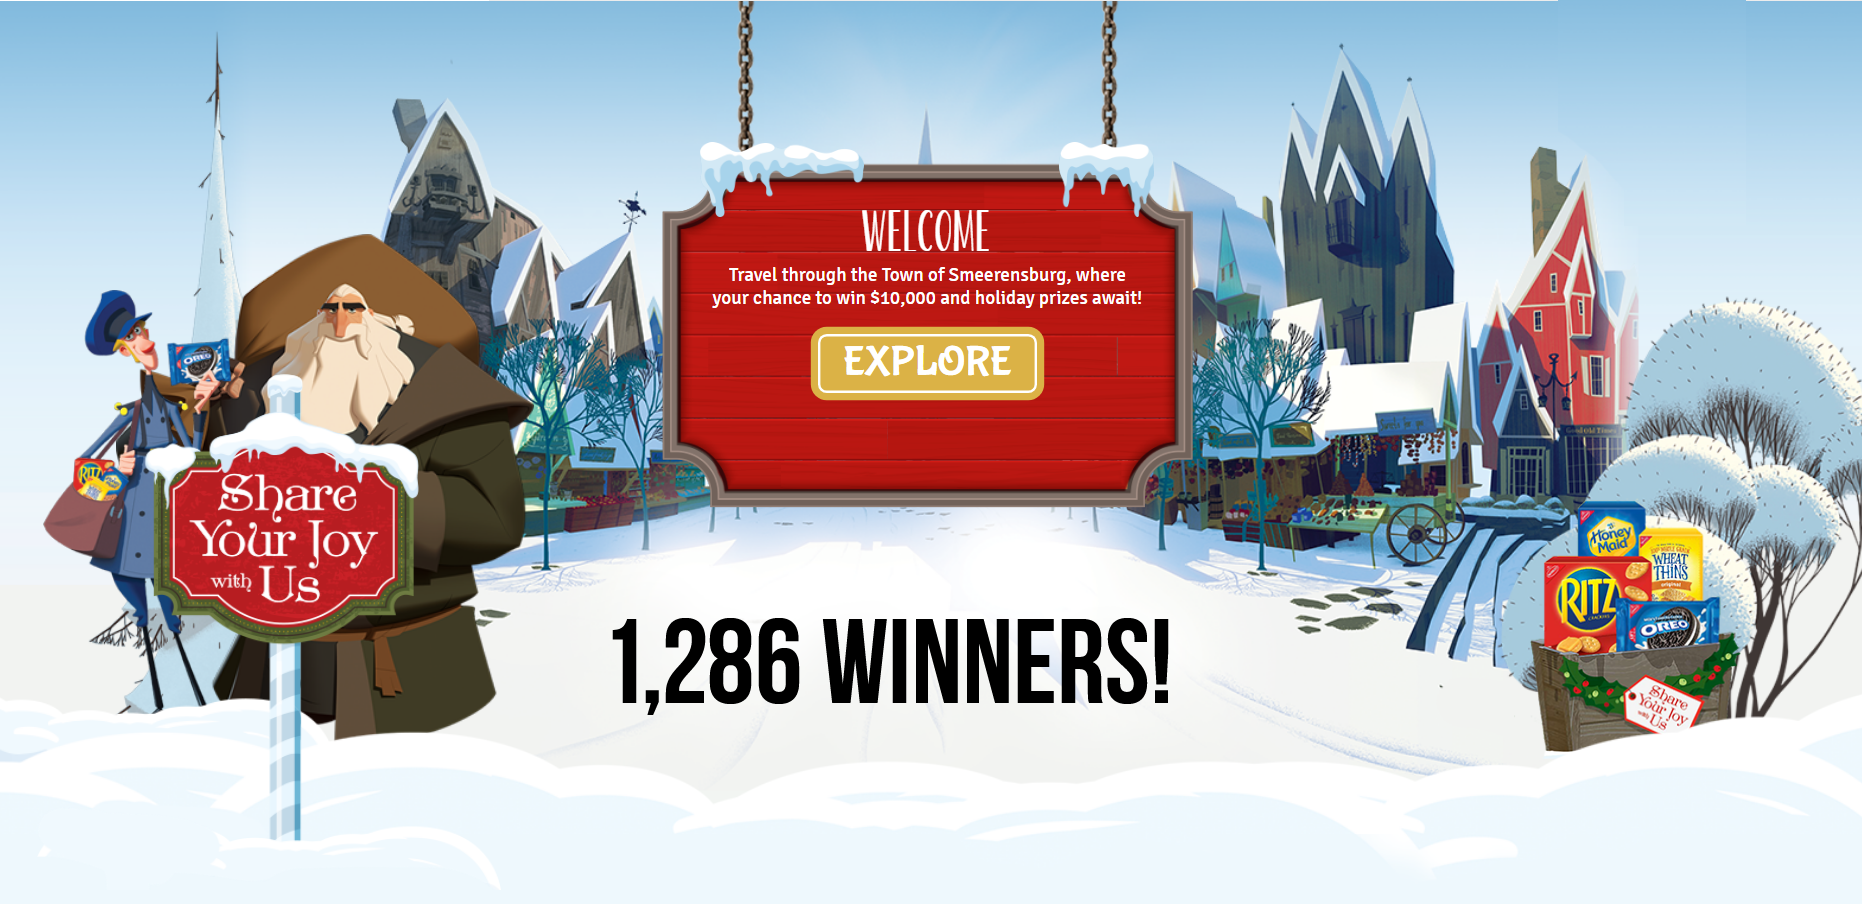 1,286 WINNERS! Play the Nabisco Share Your Joy With Us Instant Win Game 3 times daily to win prizes instantly and be entered to win the grand prize, $10,000 awarded in the form of a check